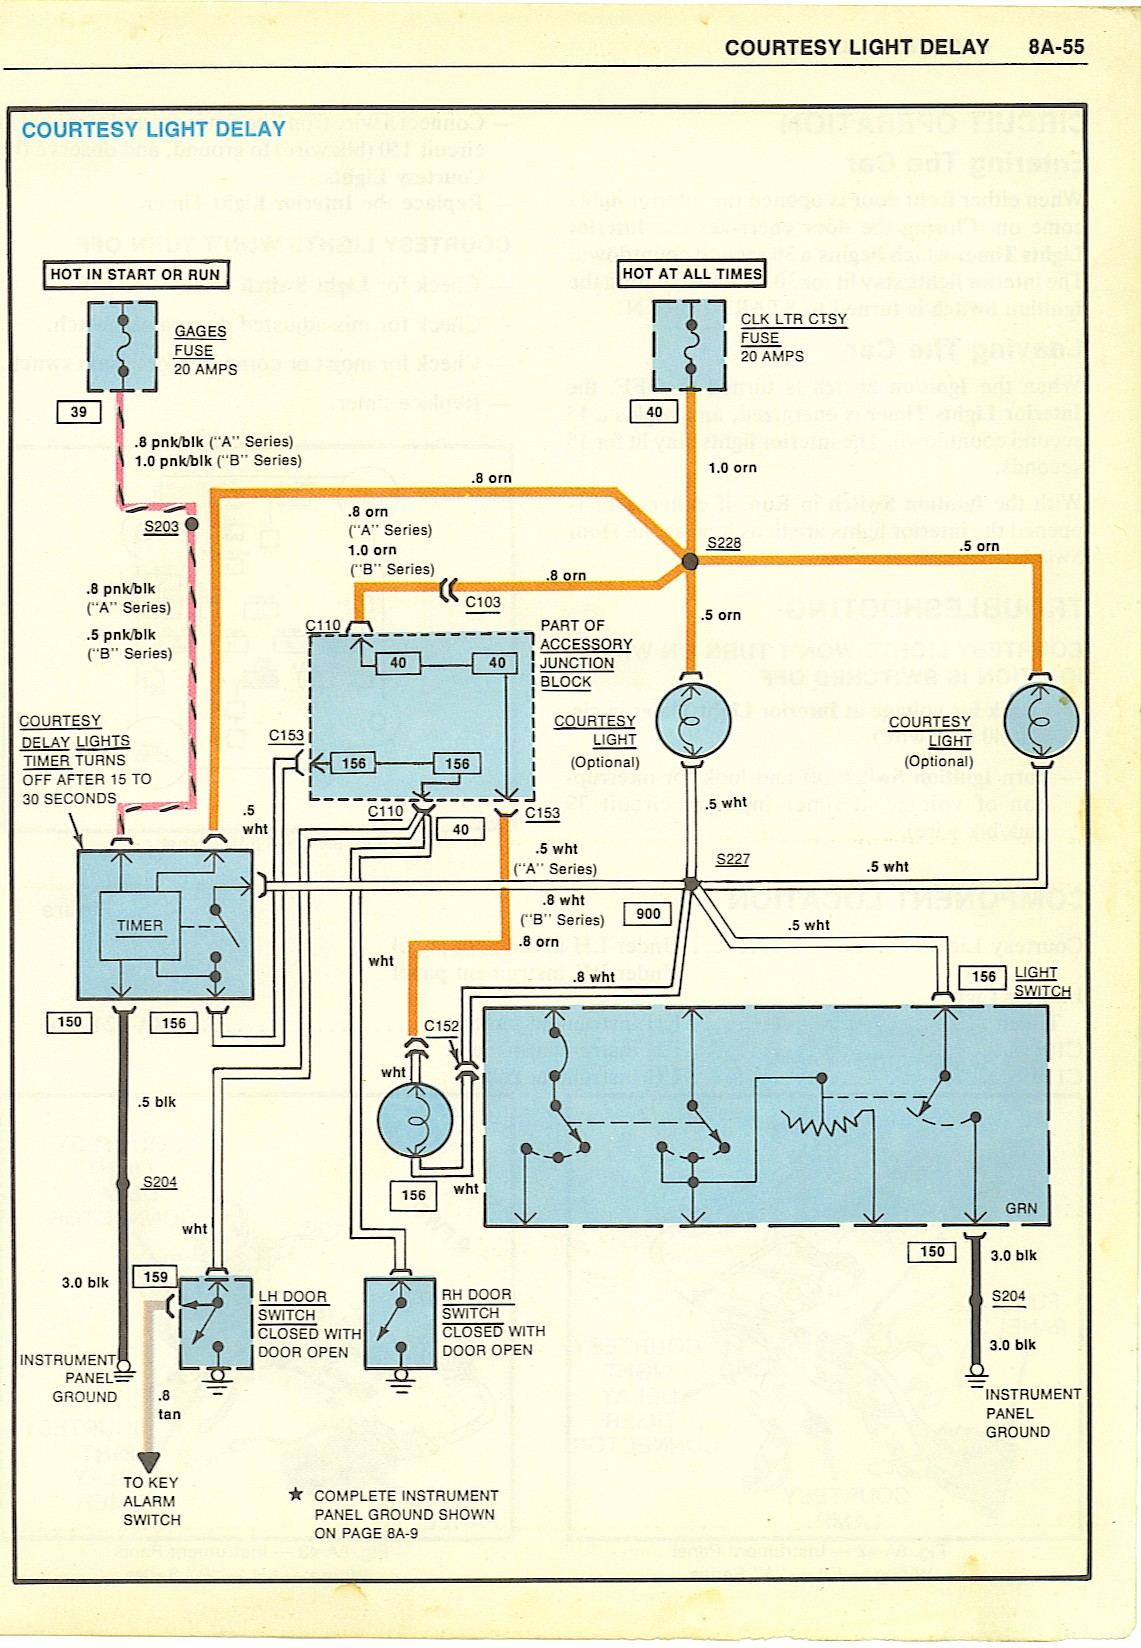 1994 T800 Wiring Schematic For A Starting Know About Diagram Kenworth Fuse Box Diagrams Rh Maliburacing Com